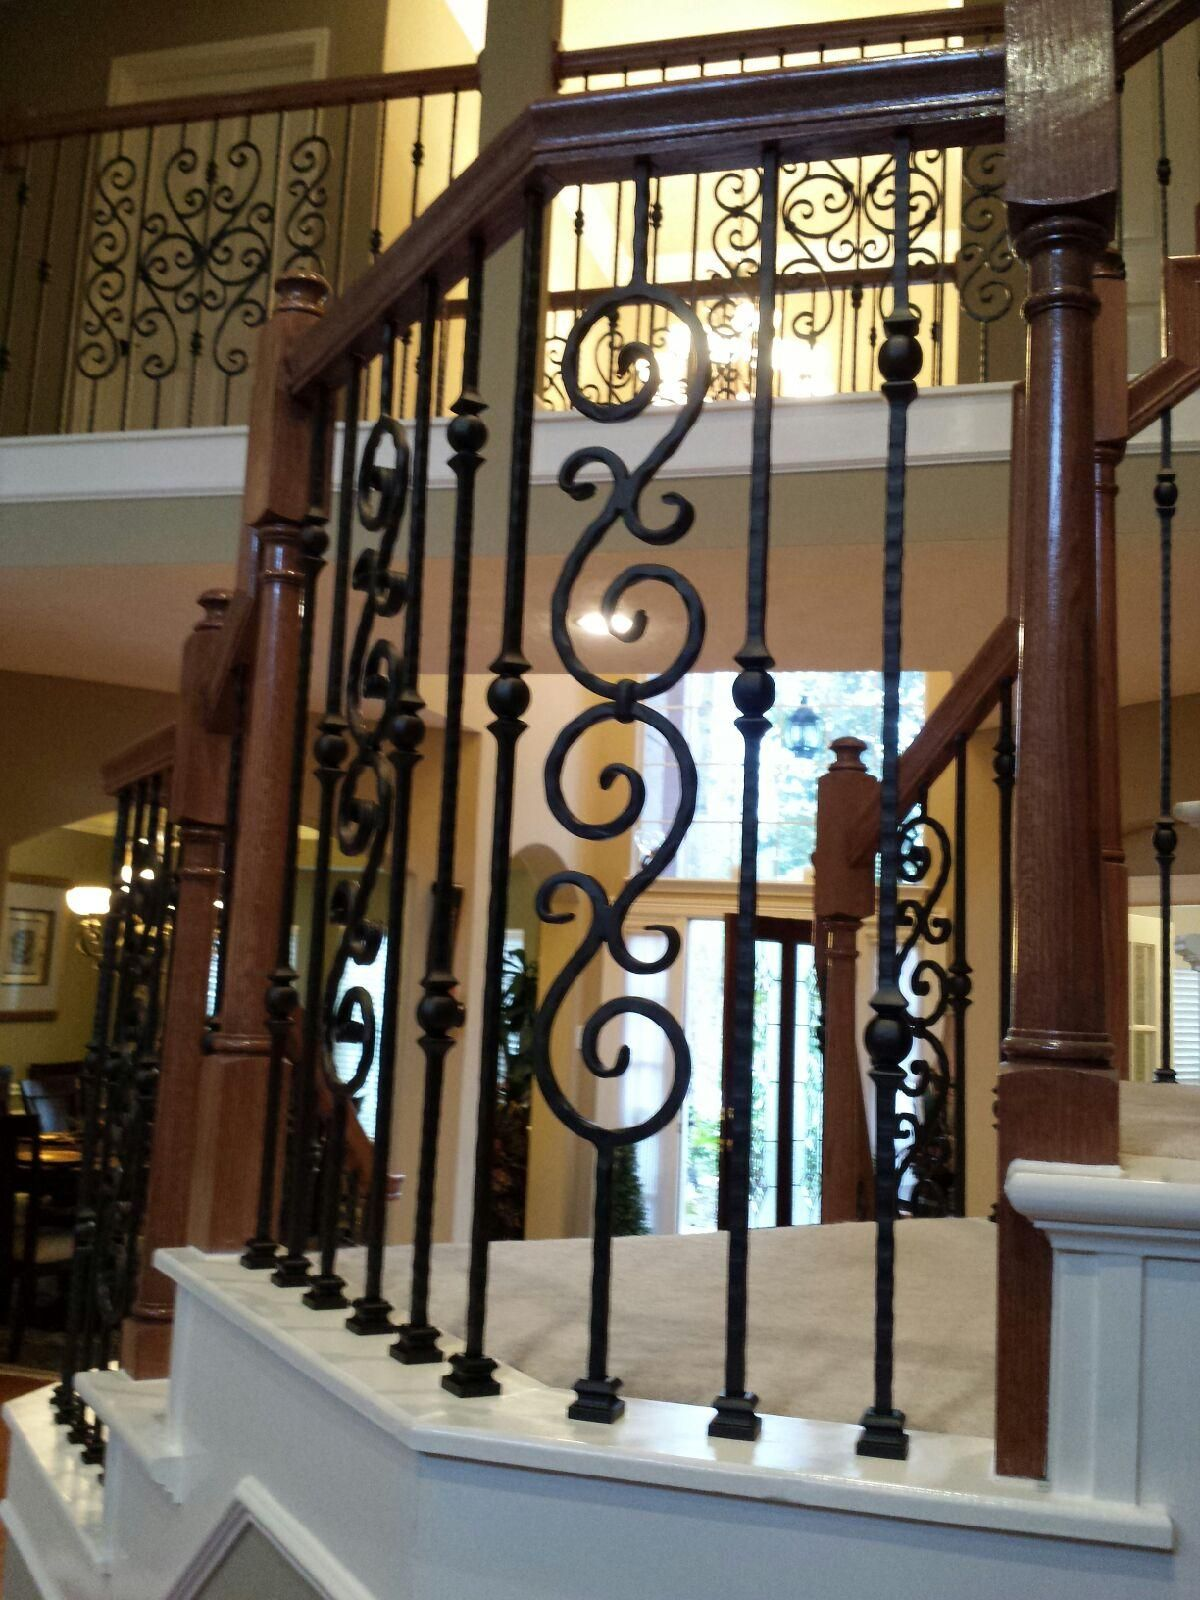 For the Harris Houston home we replaced their wooden balusters